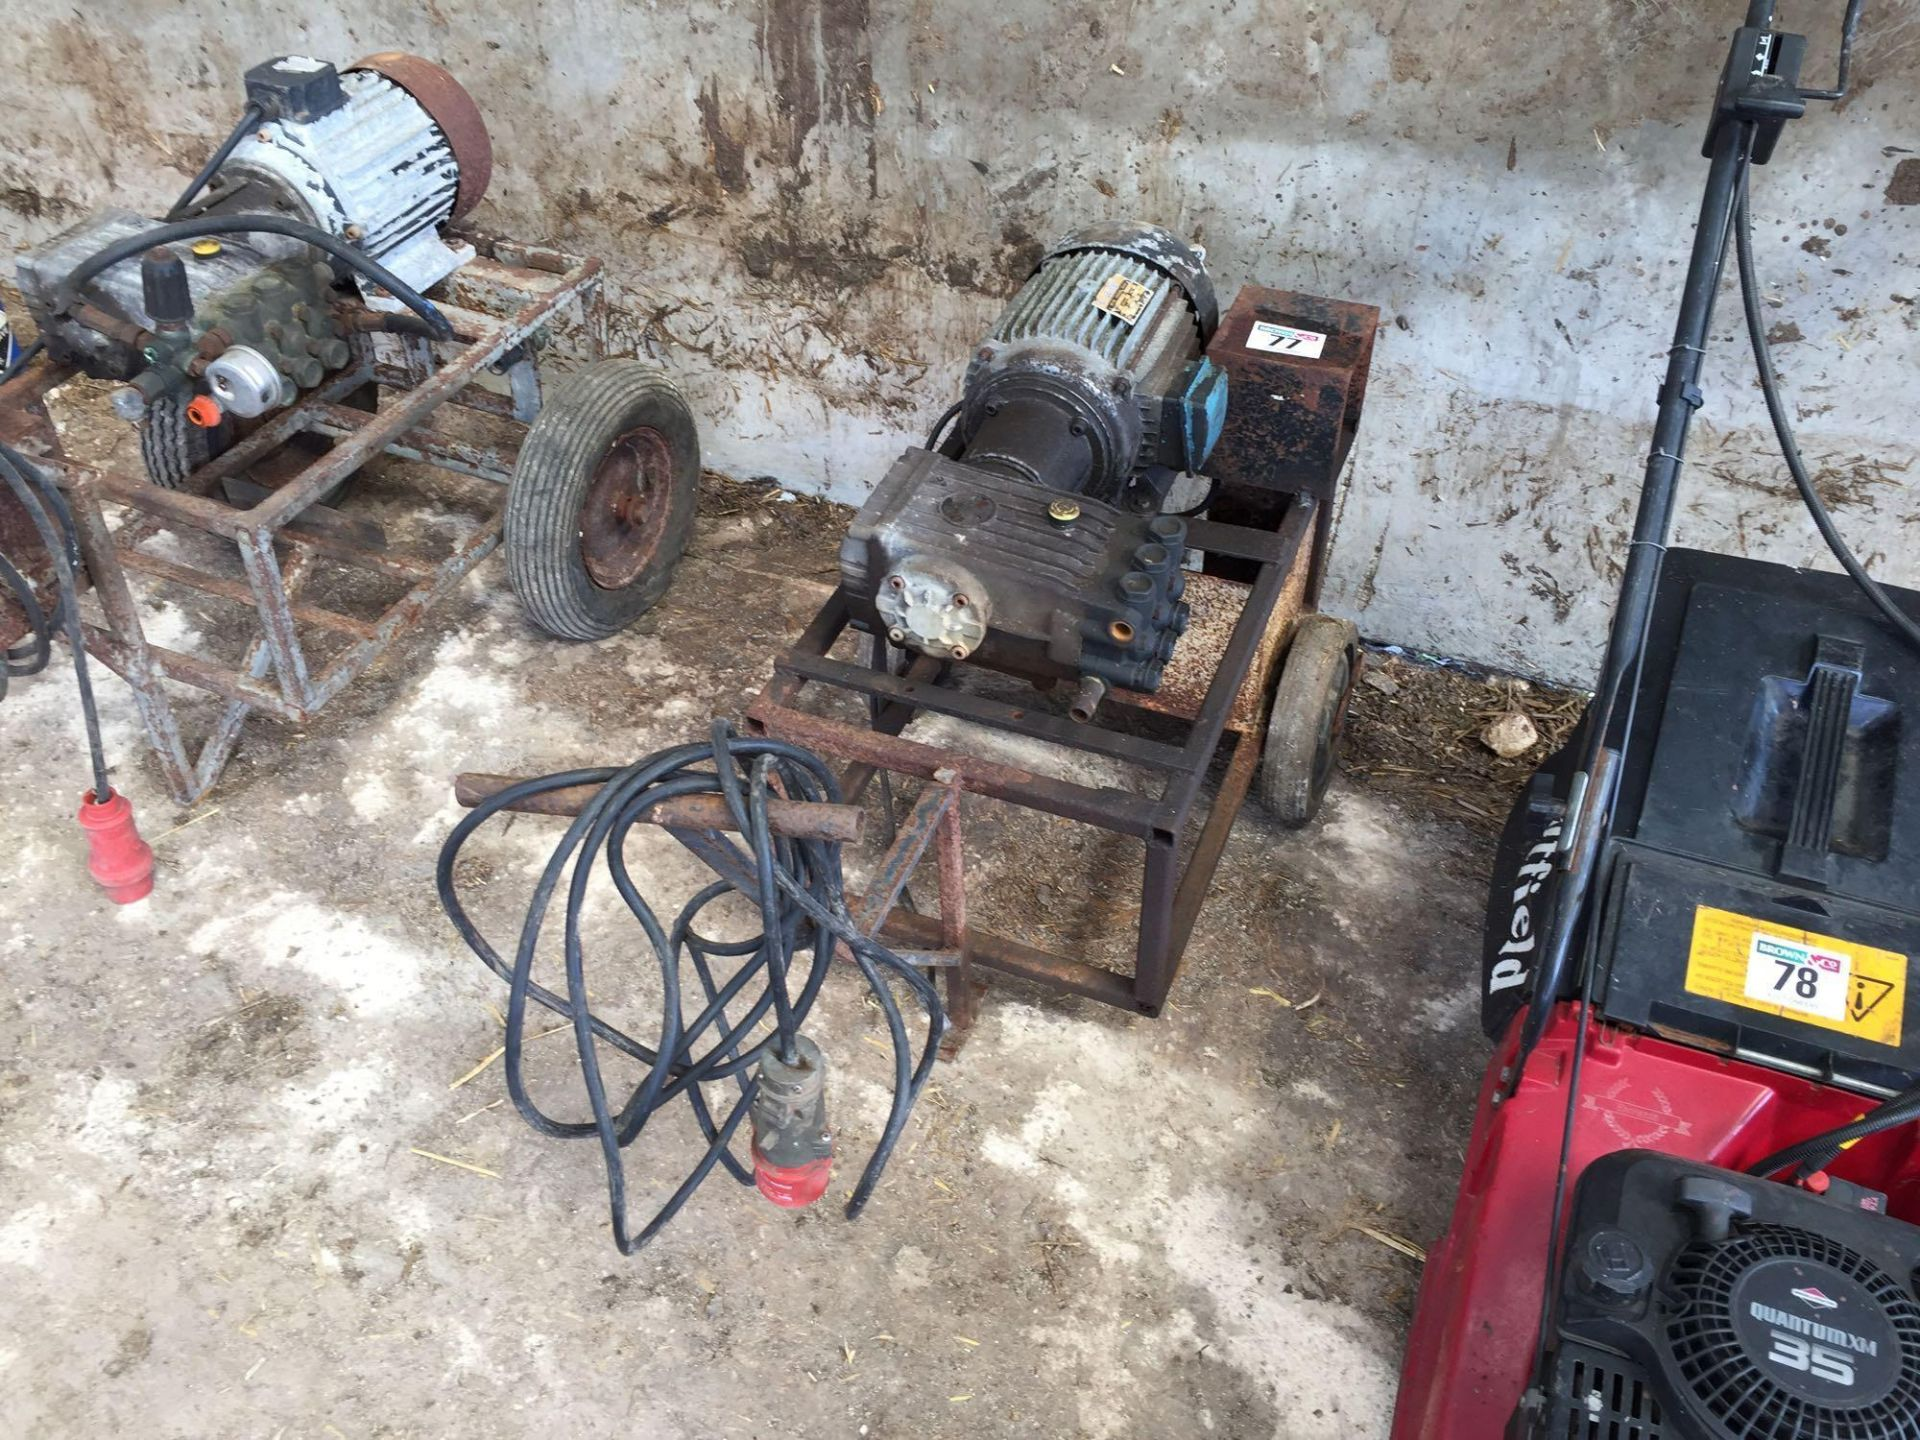 Lot 77 - Pressure washer, 3 phase